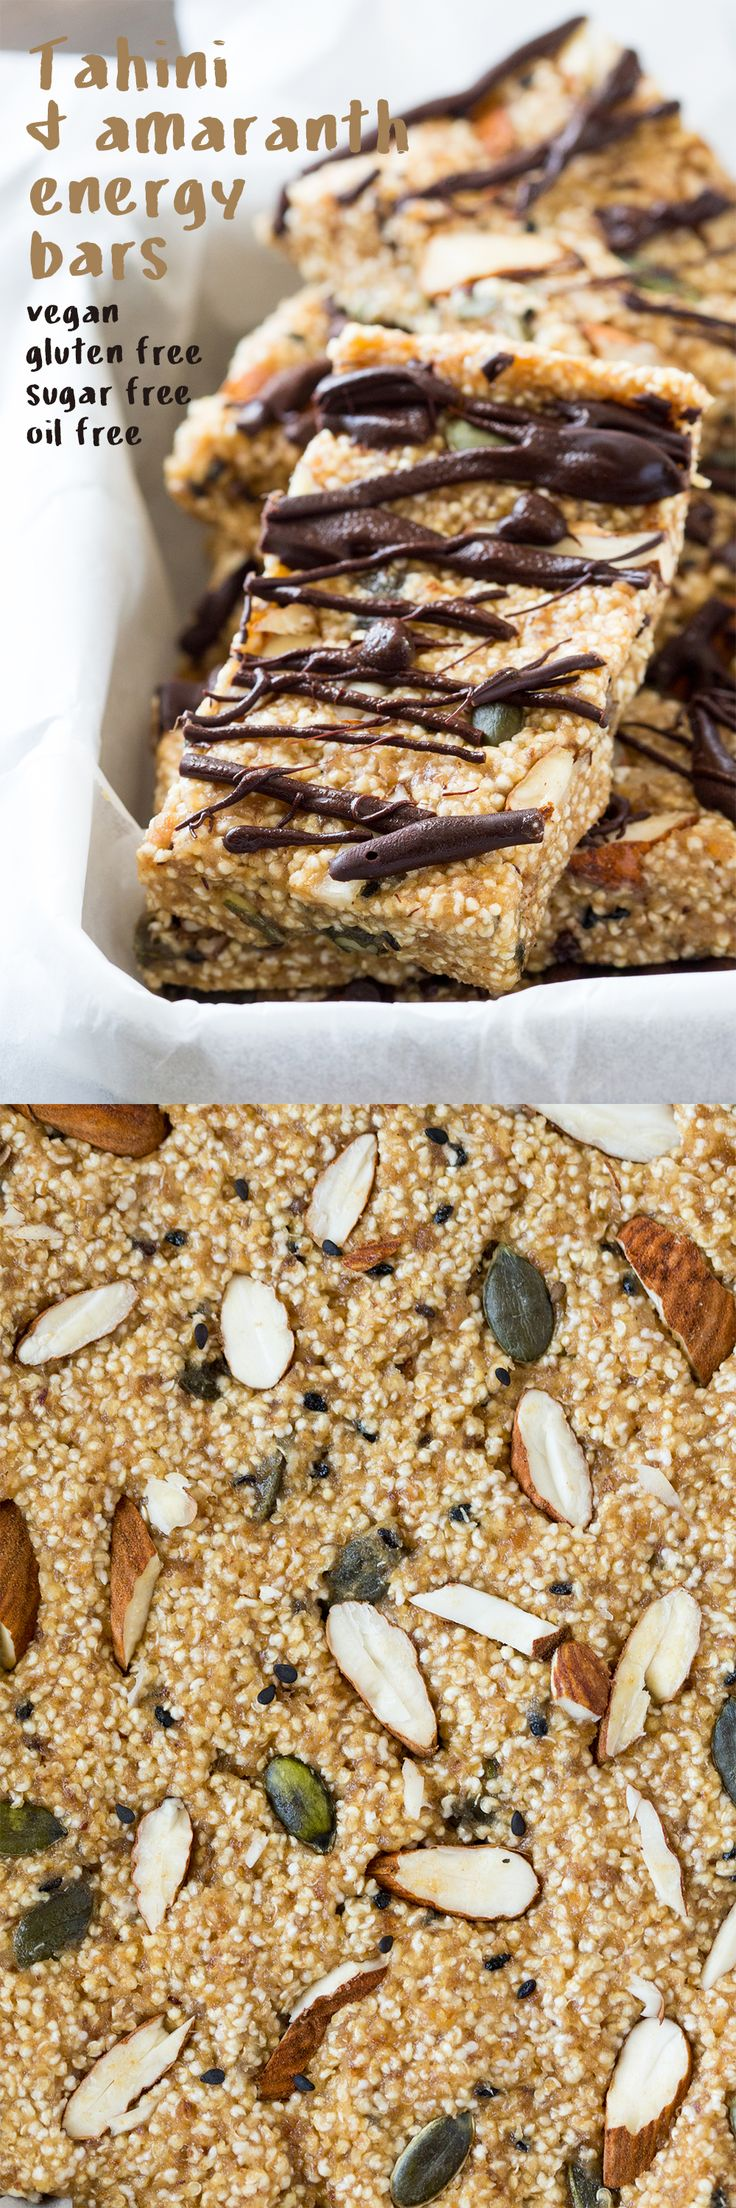 Tahini and amaranth energy bars